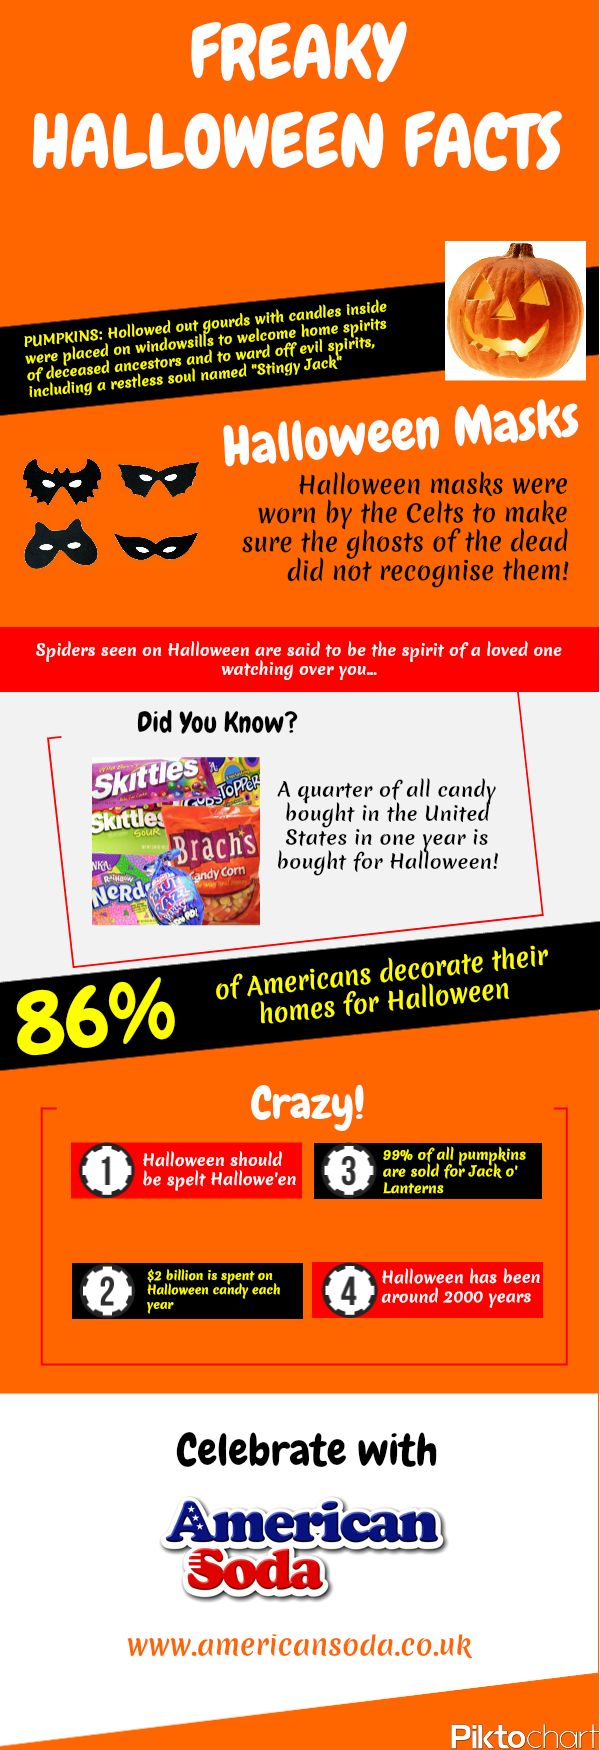 freaky halloween facts infographic - Crazy Halloween Facts